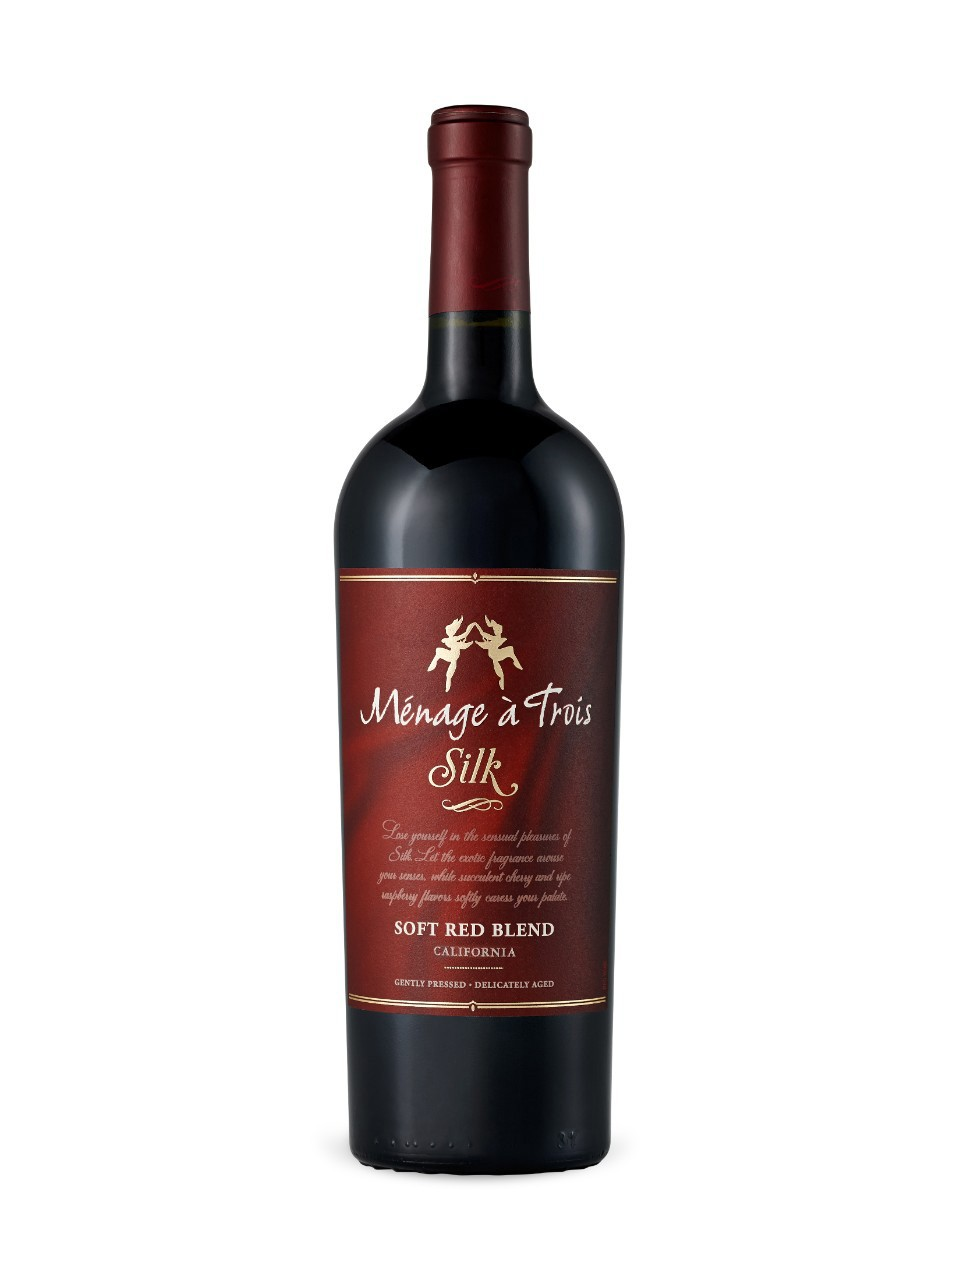 Ménage à Trois Silk Red Blend from LCBO